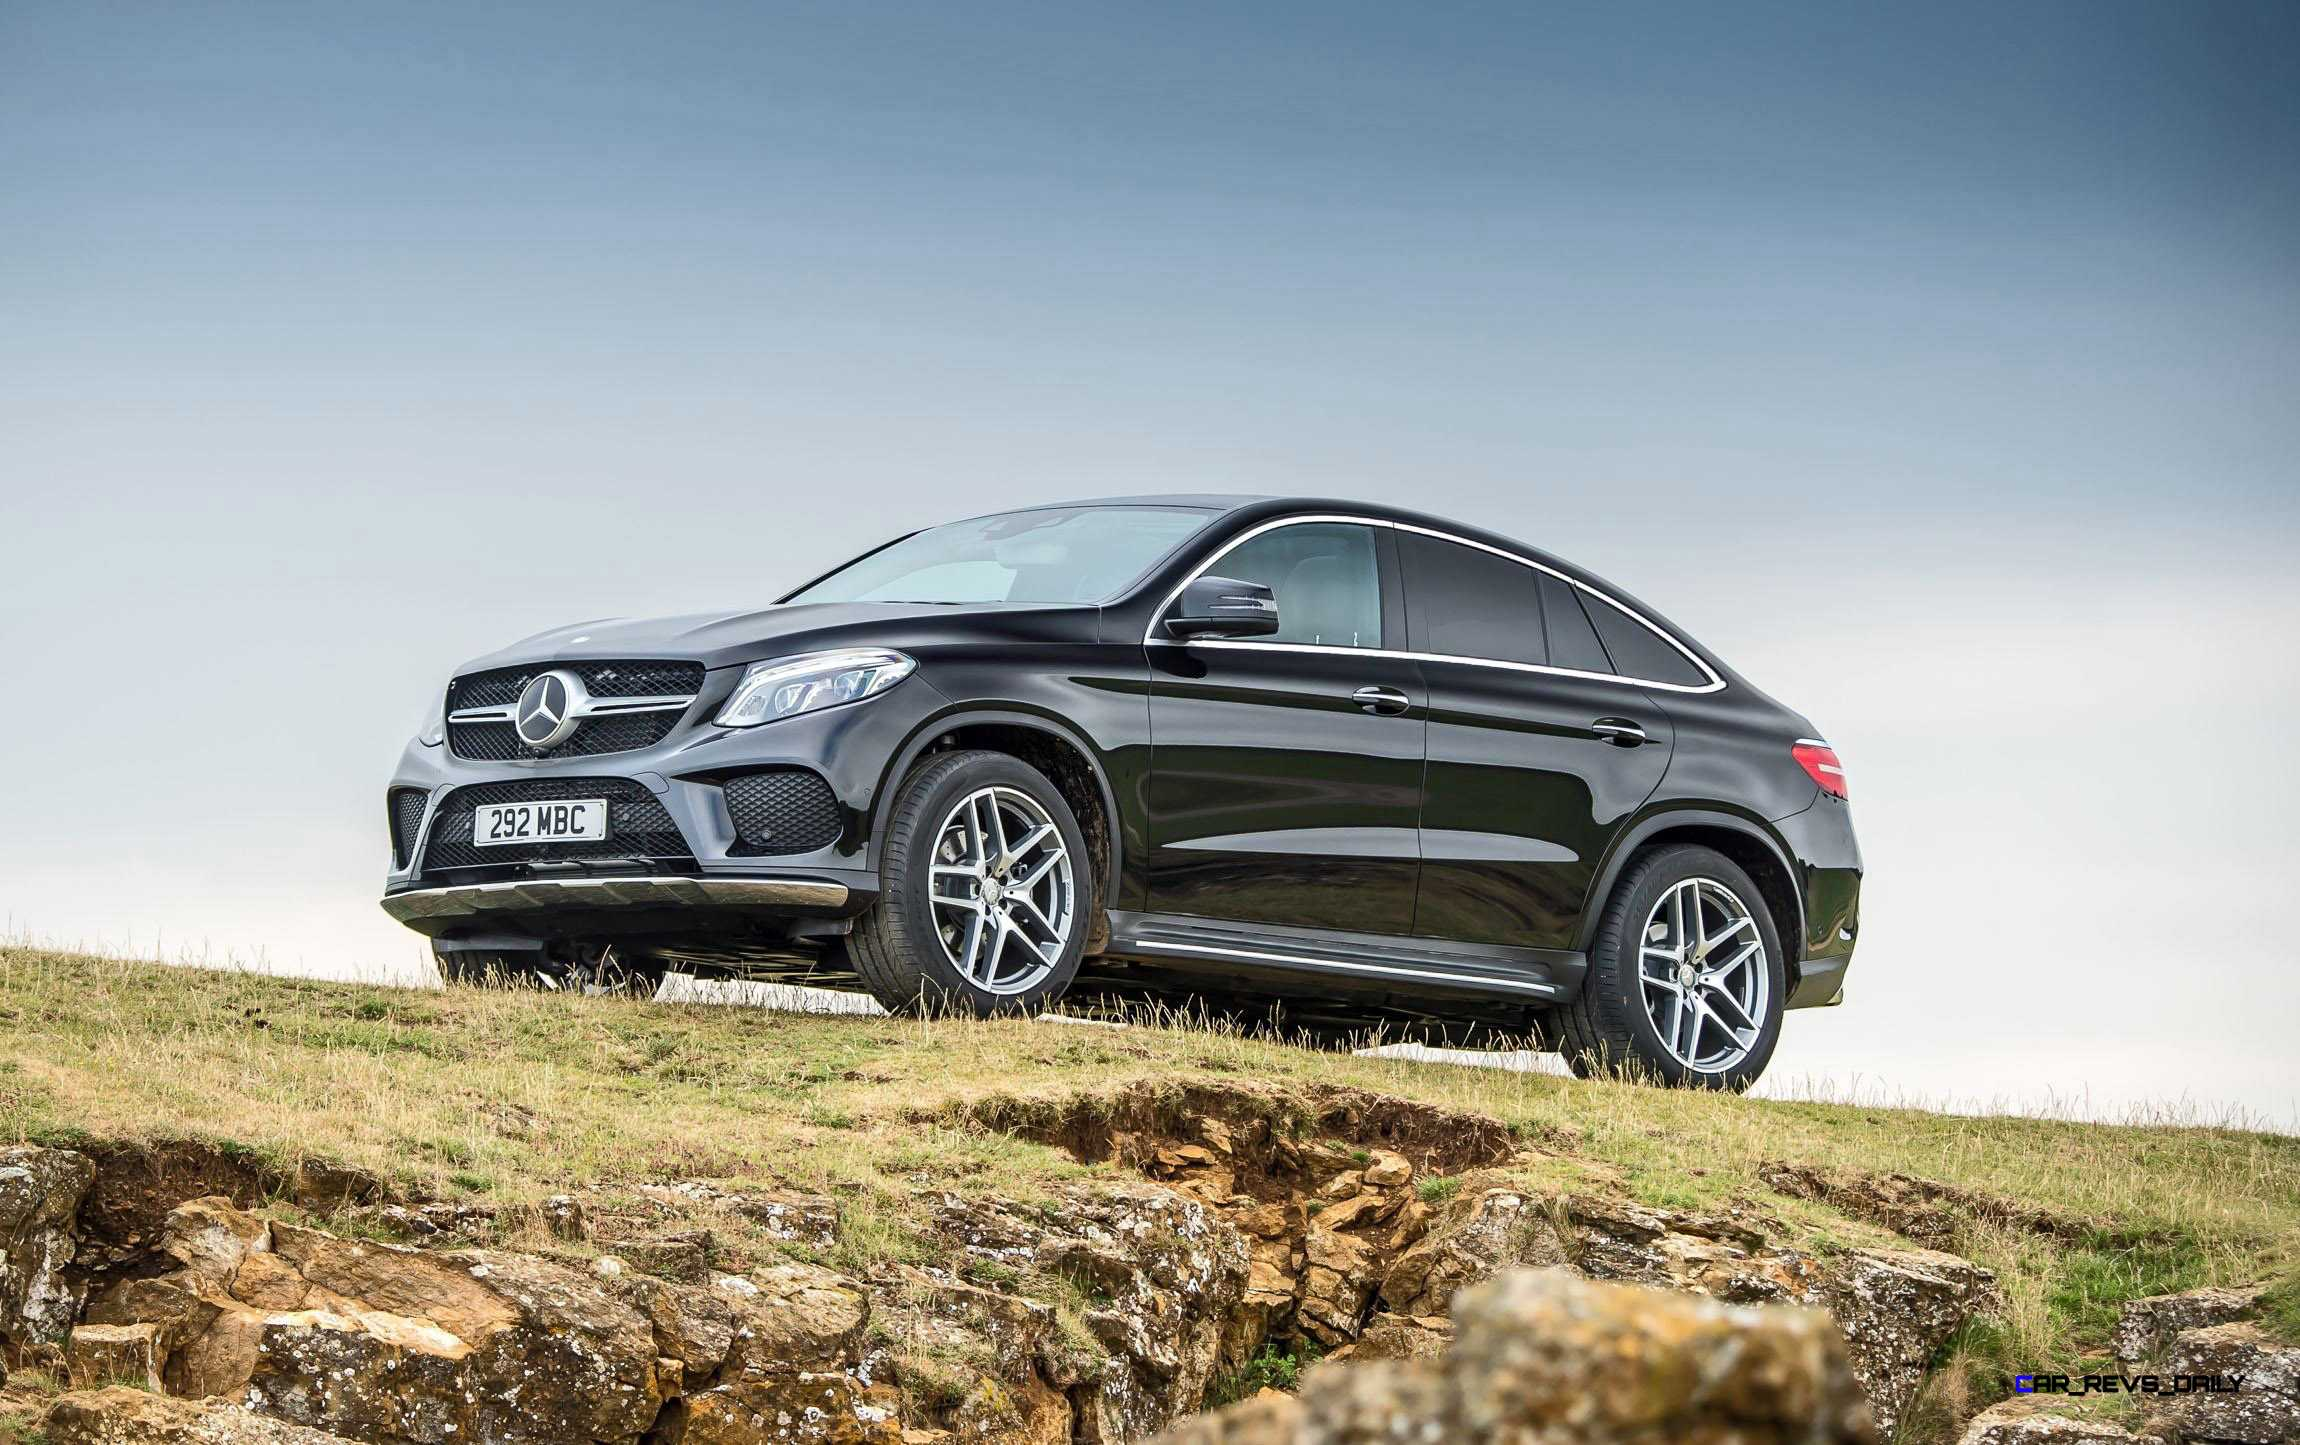 2016 mercedes benz gle class coupe 20 for 2016 mercedes benz gle class